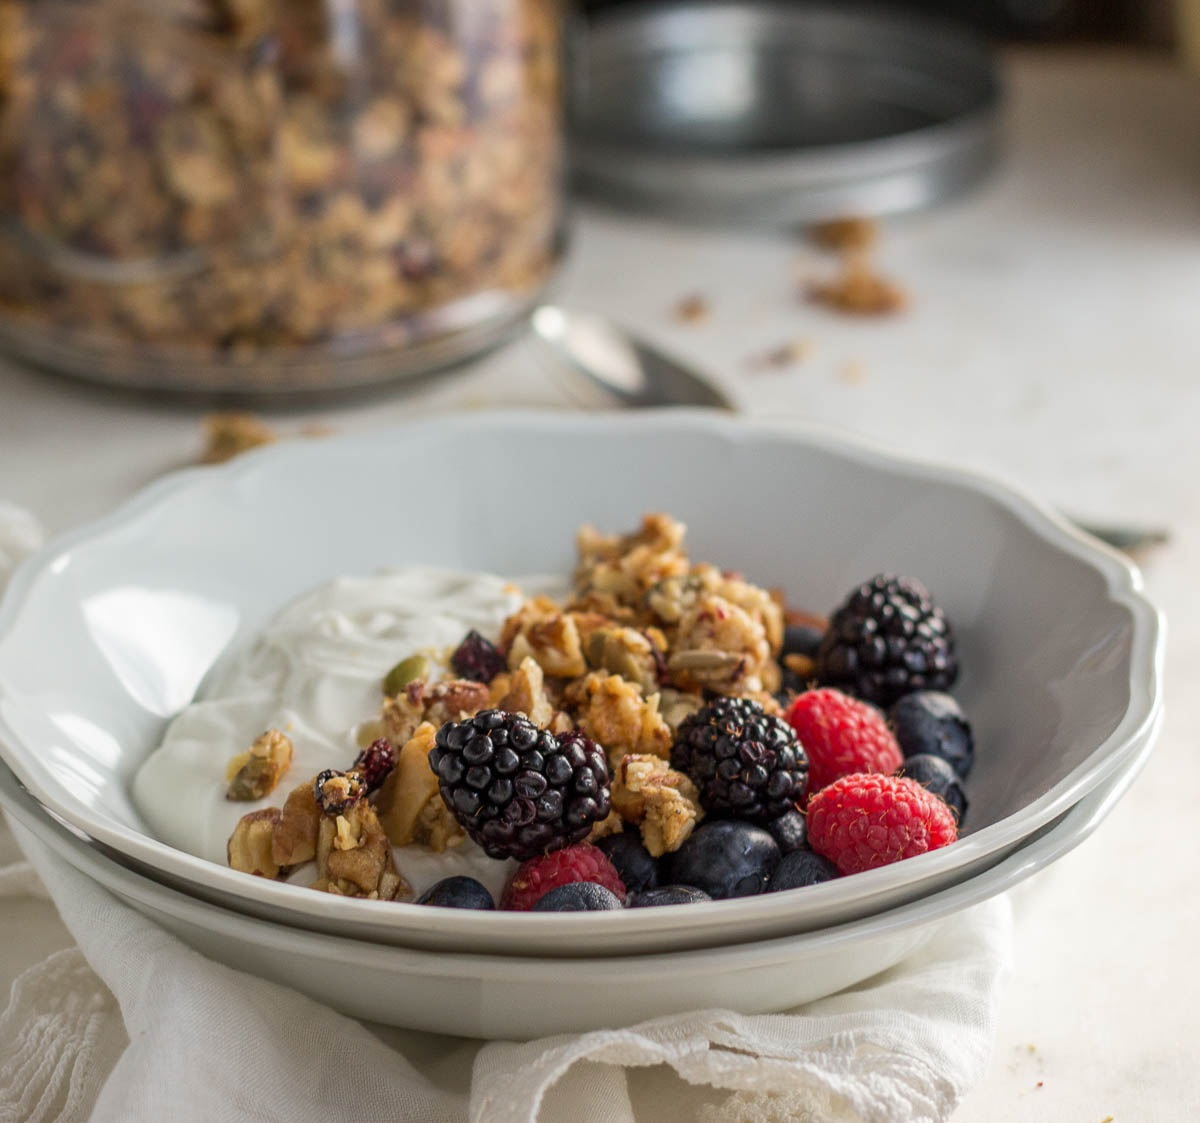 How to Balance Your Keto With Nuts, Yogurt, Cereals and Other Foods